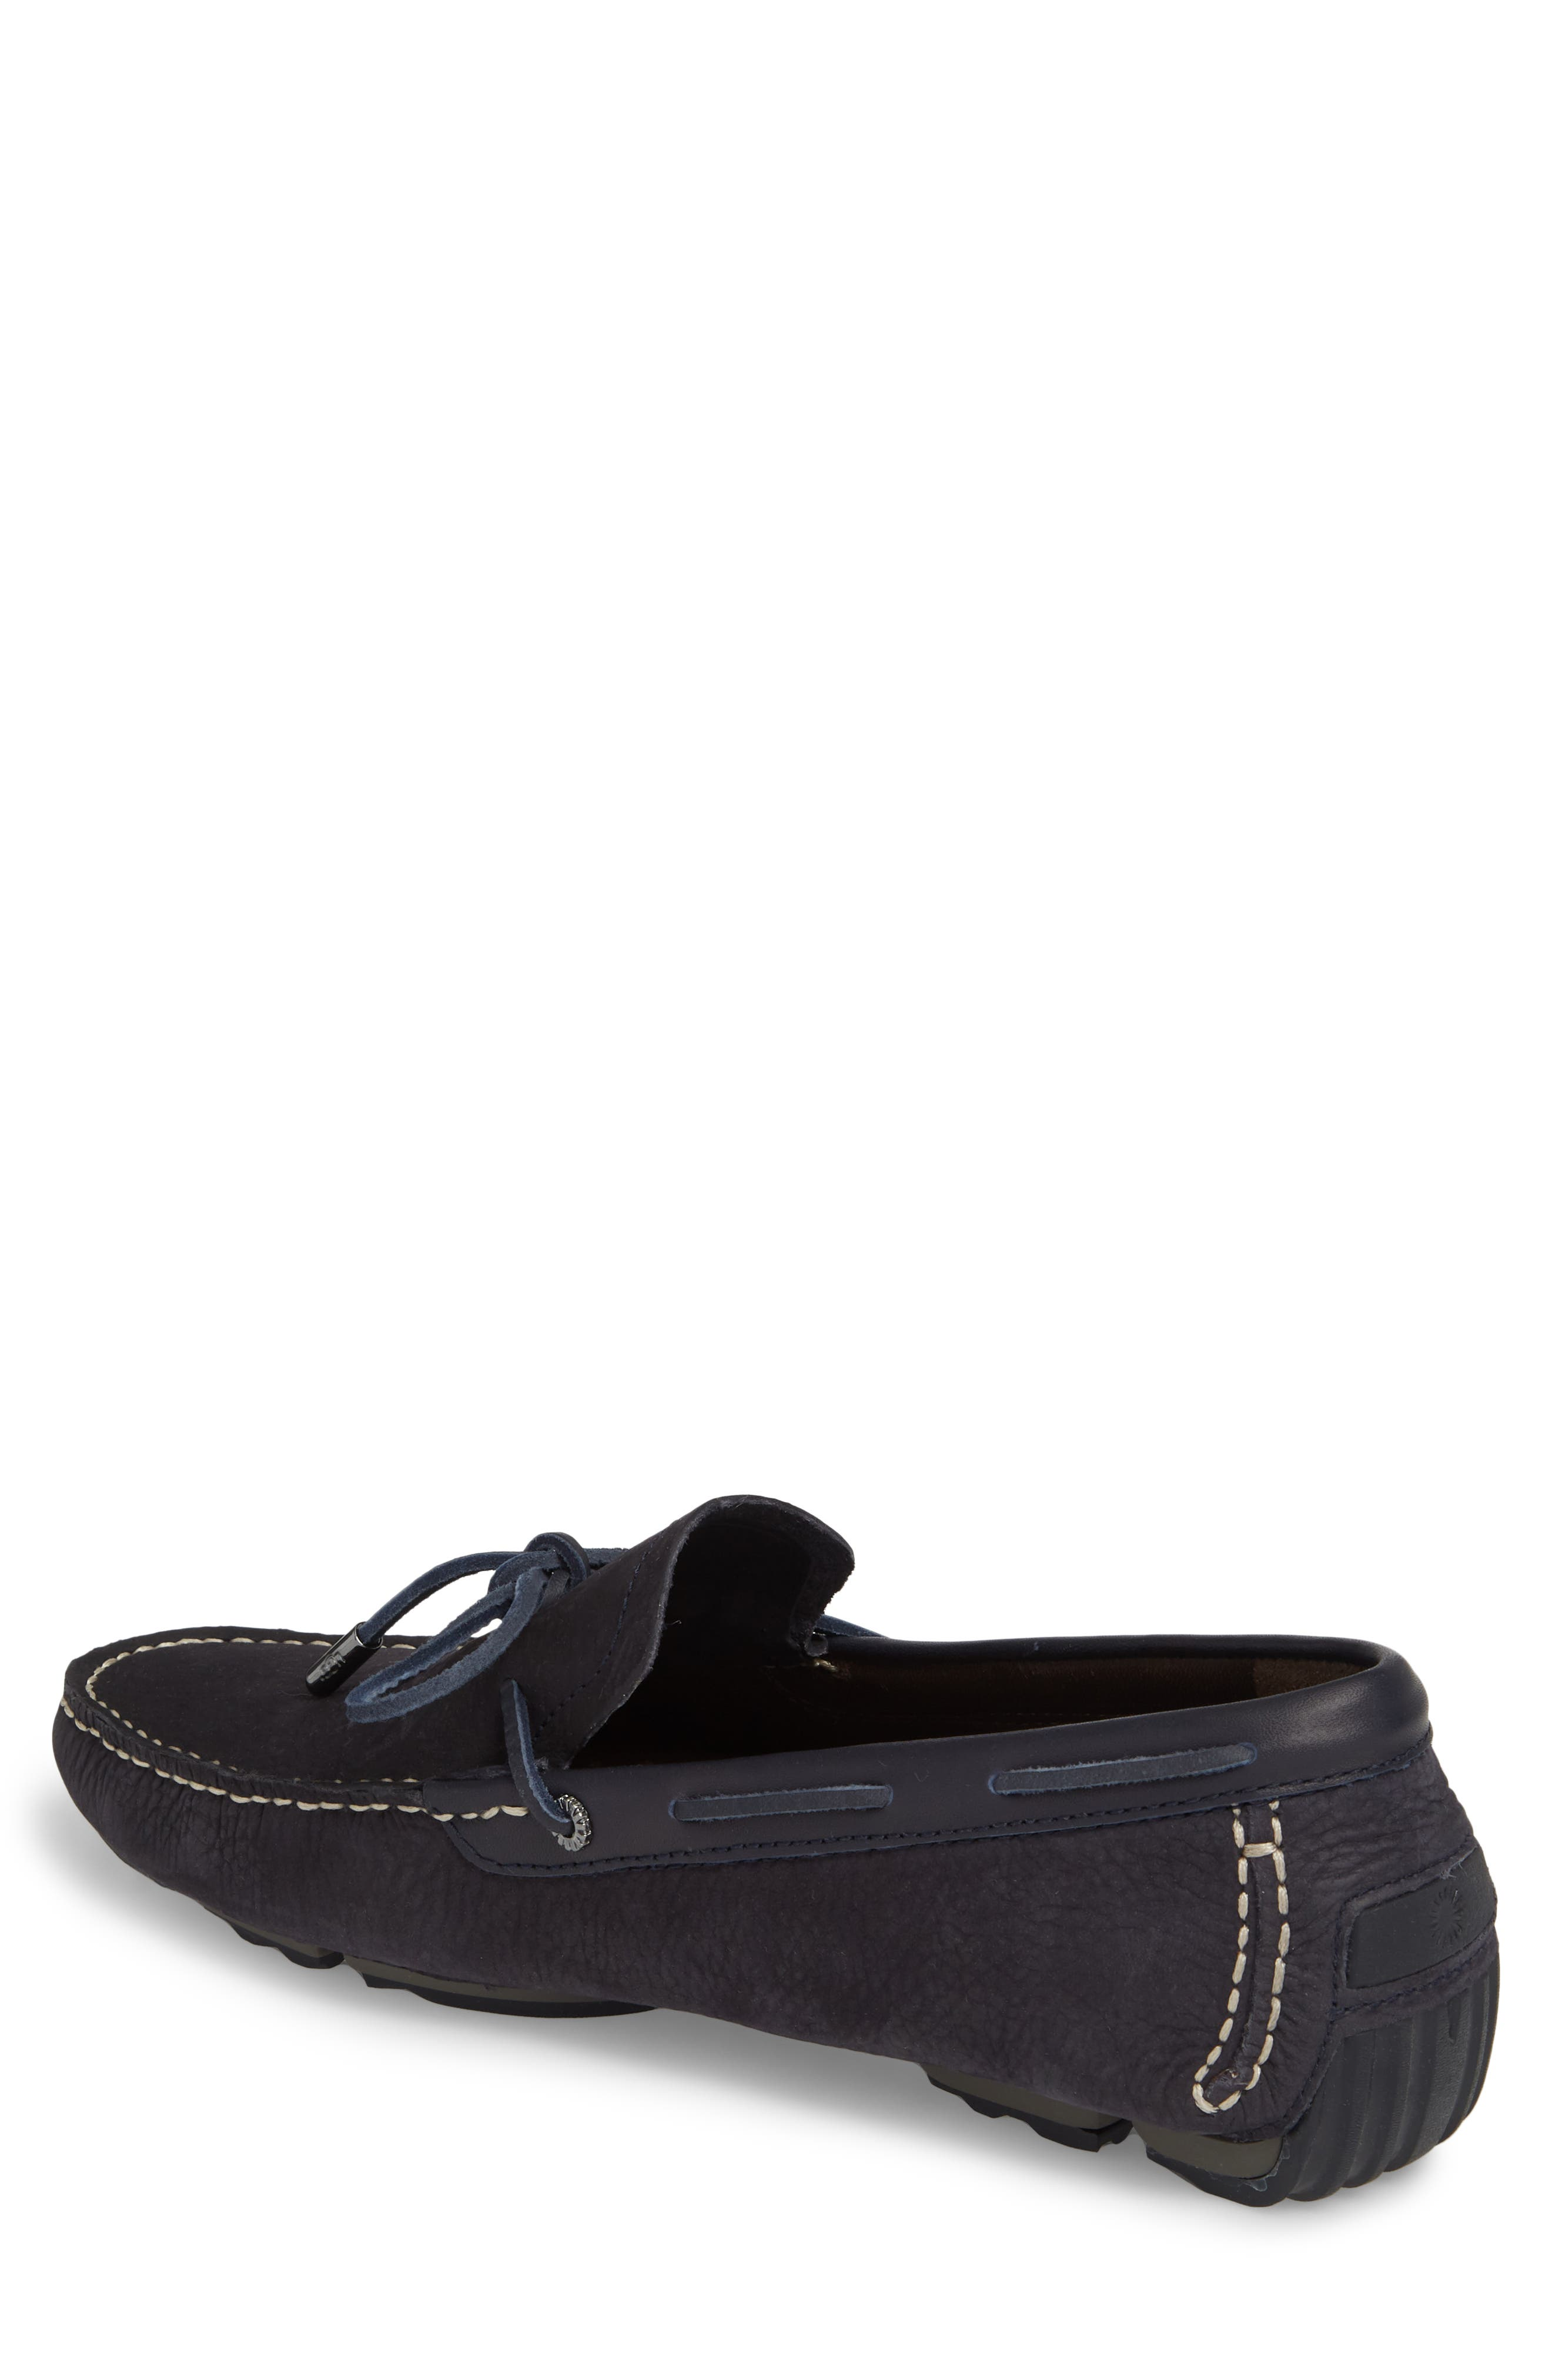 Bel Air Driving Moccasin,                             Alternate thumbnail 2, color,                             Navy Leather